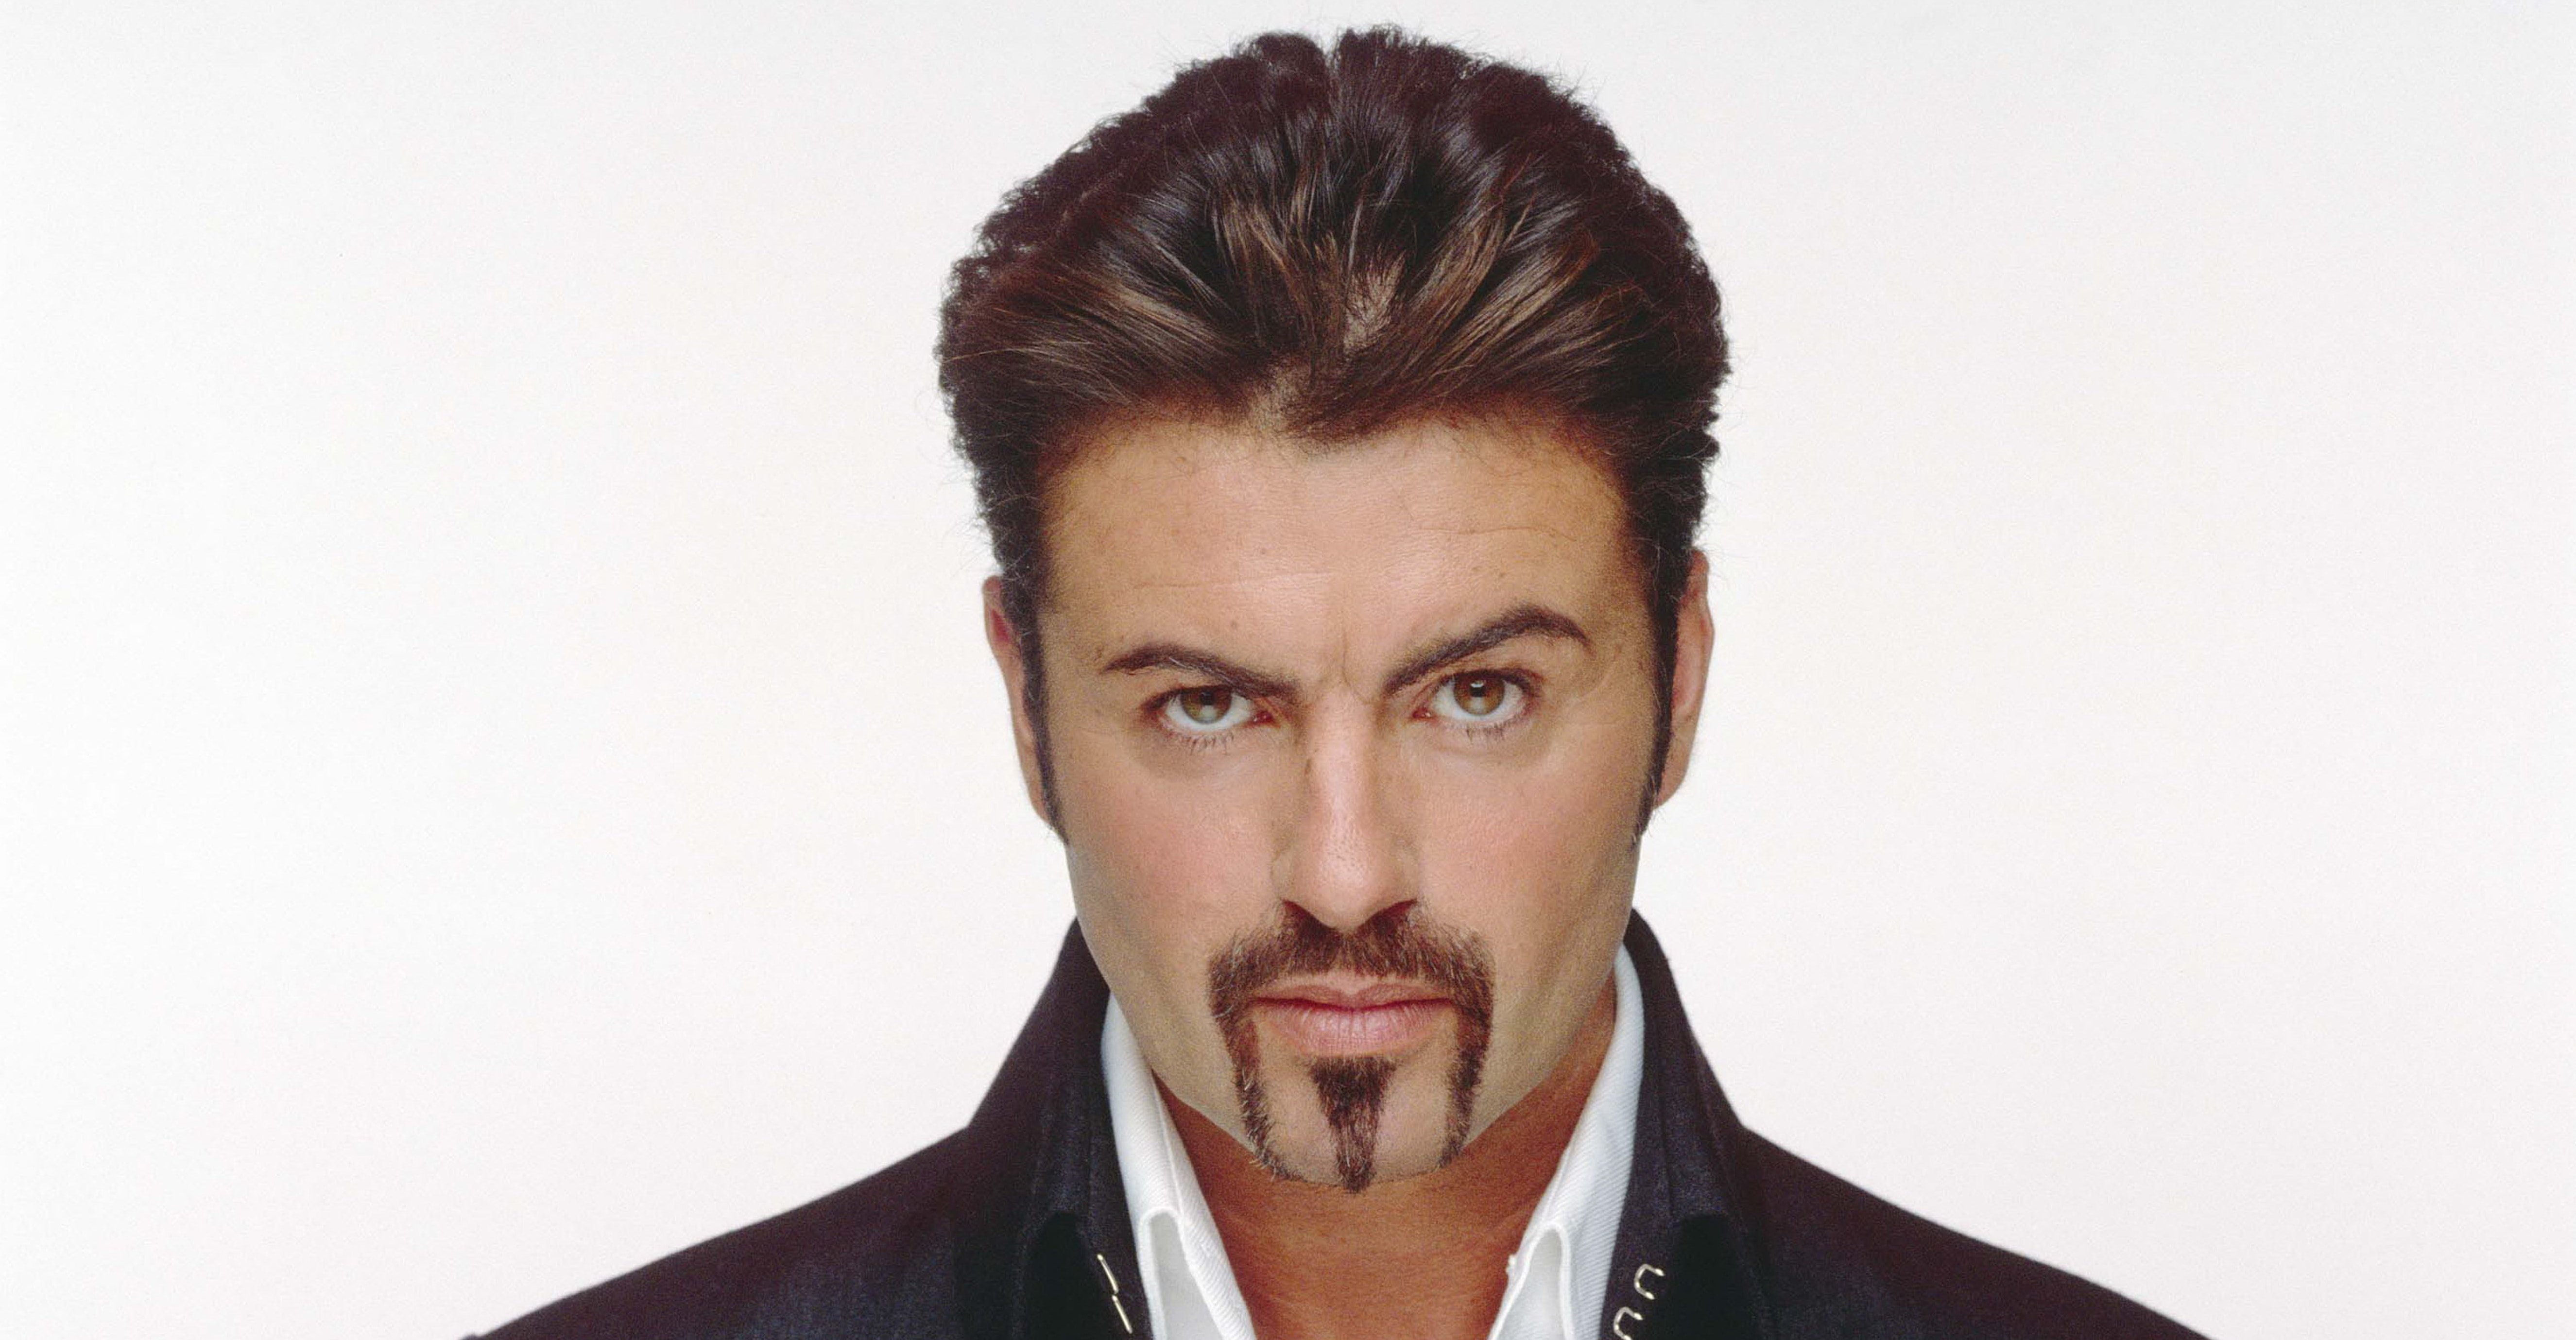 george michael widescreen face wallpaper 619